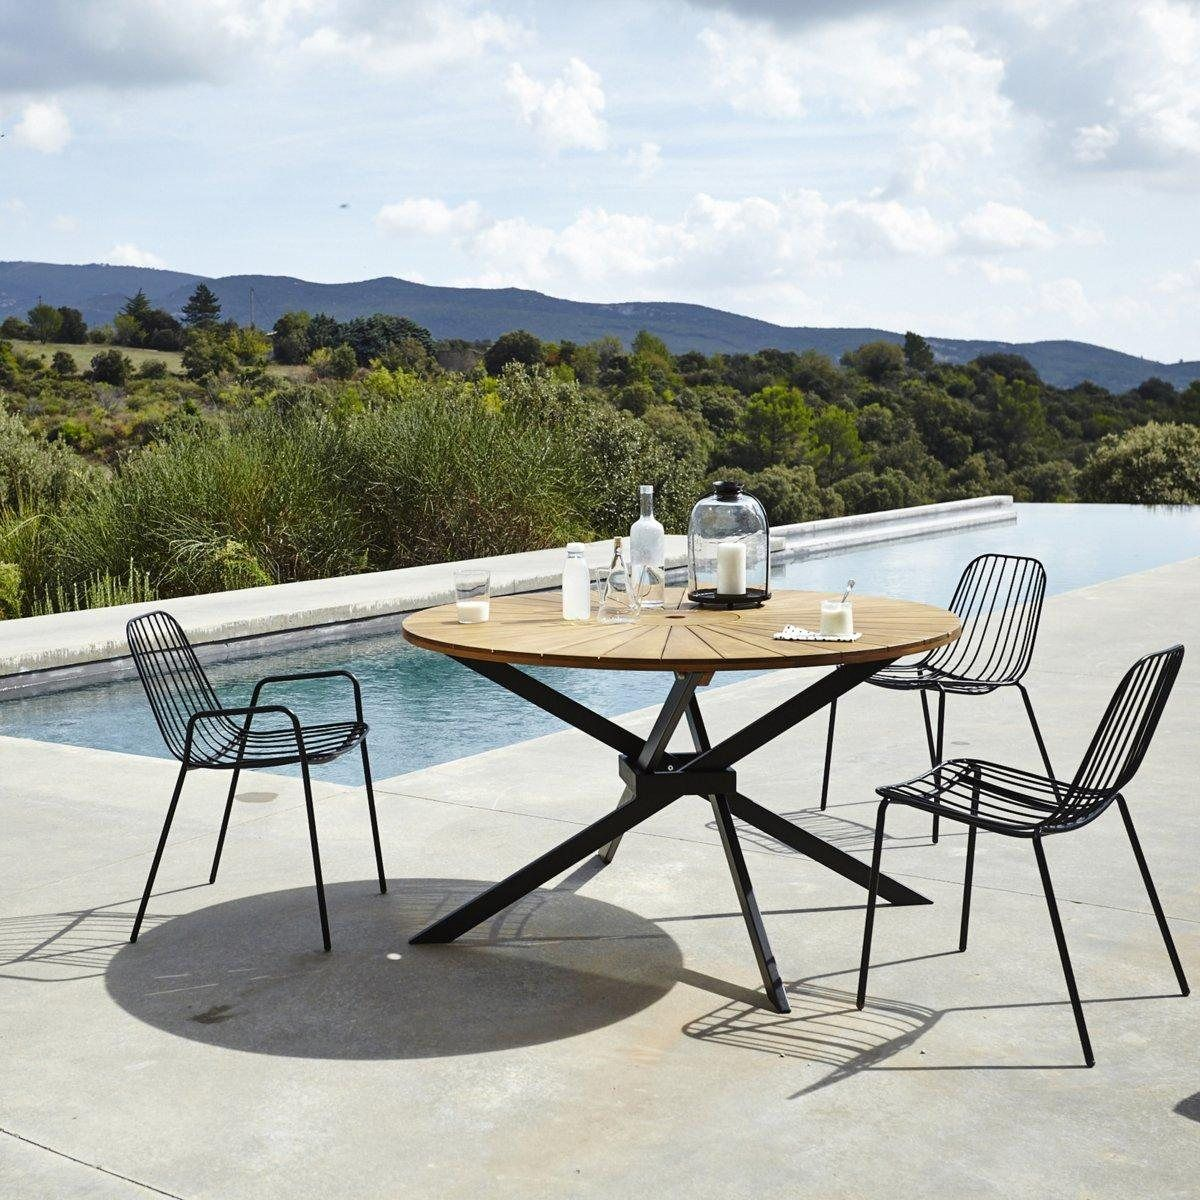 Table de jardin ronde, Jakta | Garden party! | Outdoor dining chair ...